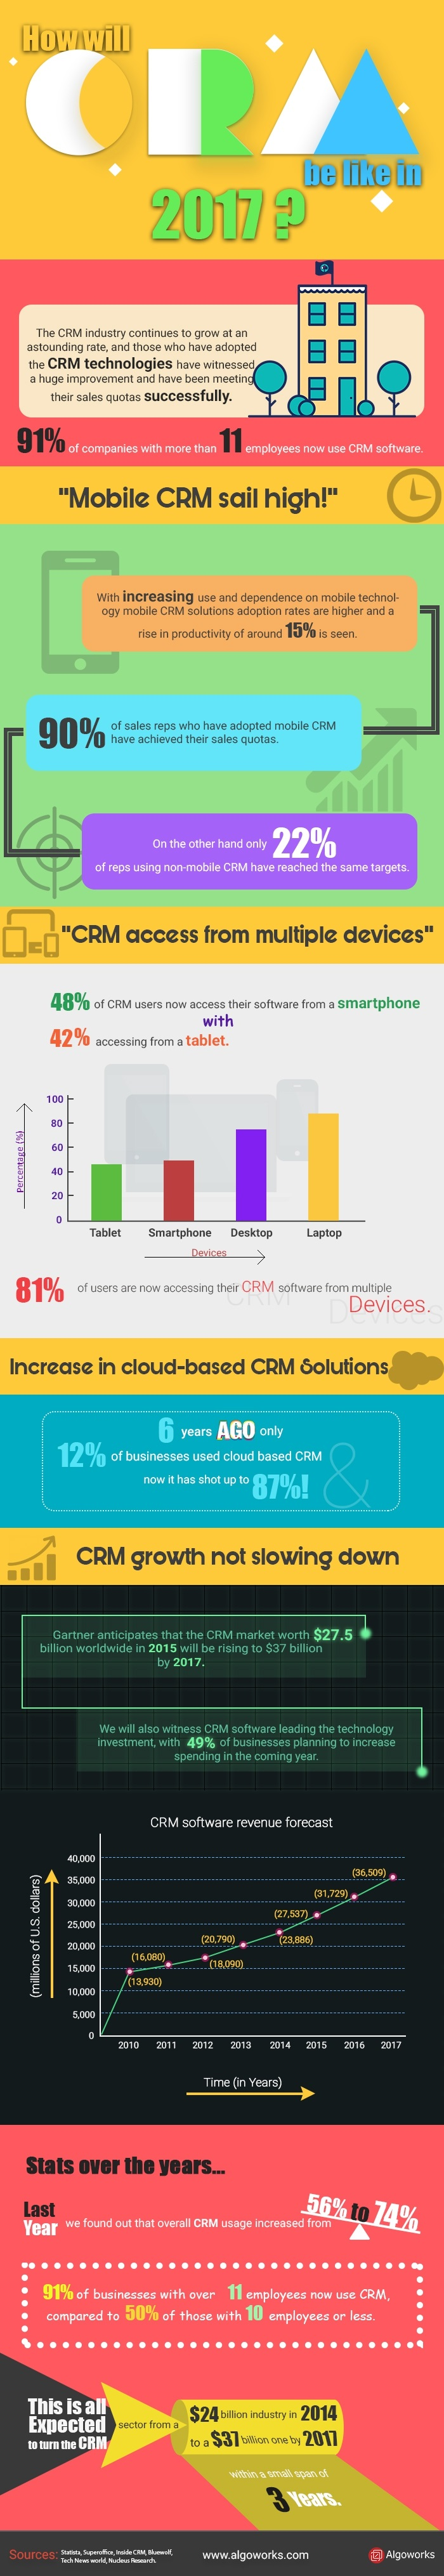 How Will CRM Be Like In 2017 | An Infographic